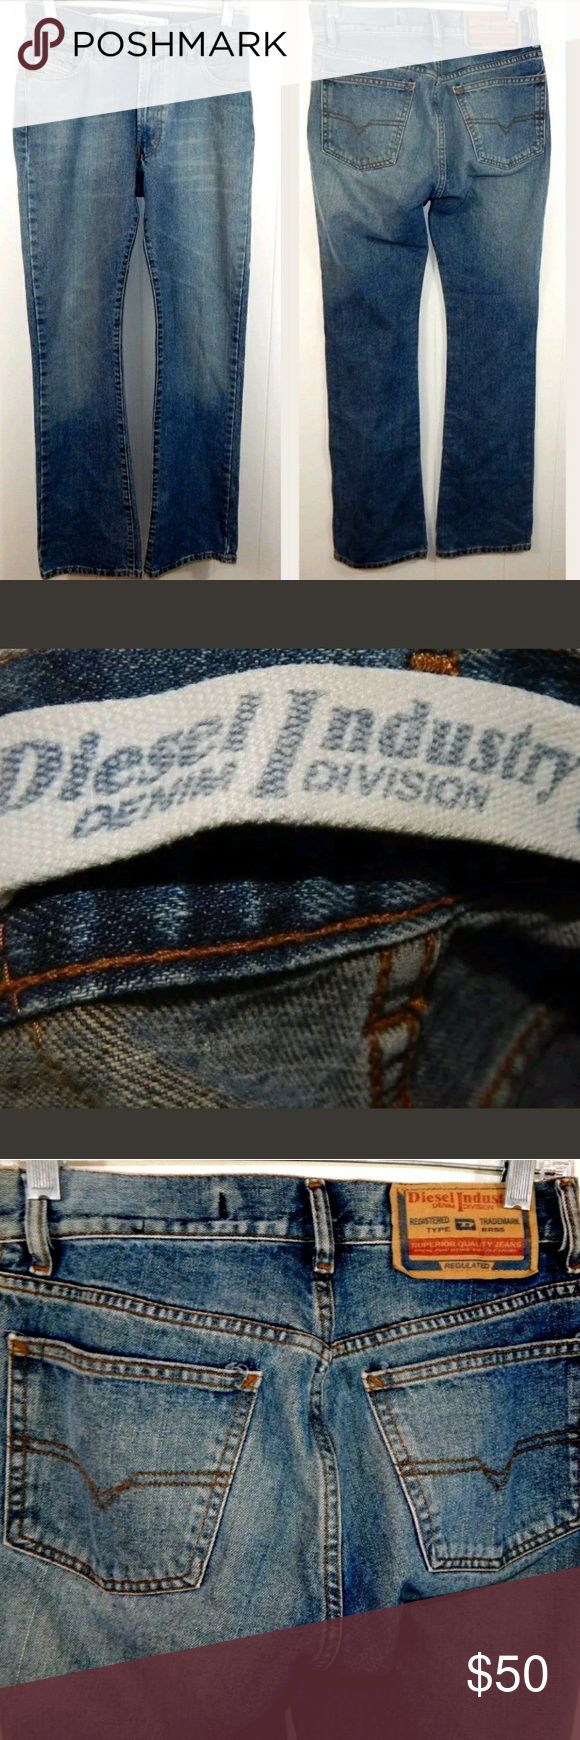 "Diesel Boot Cut Medium Wash Jeans Women's boot cut jeans by Diesel. Medium wash with whiskering. Size 27/4, 29"" waist, 9.5"" rise, and 32"" inseam. 100% cotton. Gently loved in great condition. No trades. Diesel Jeans Boot Cut"